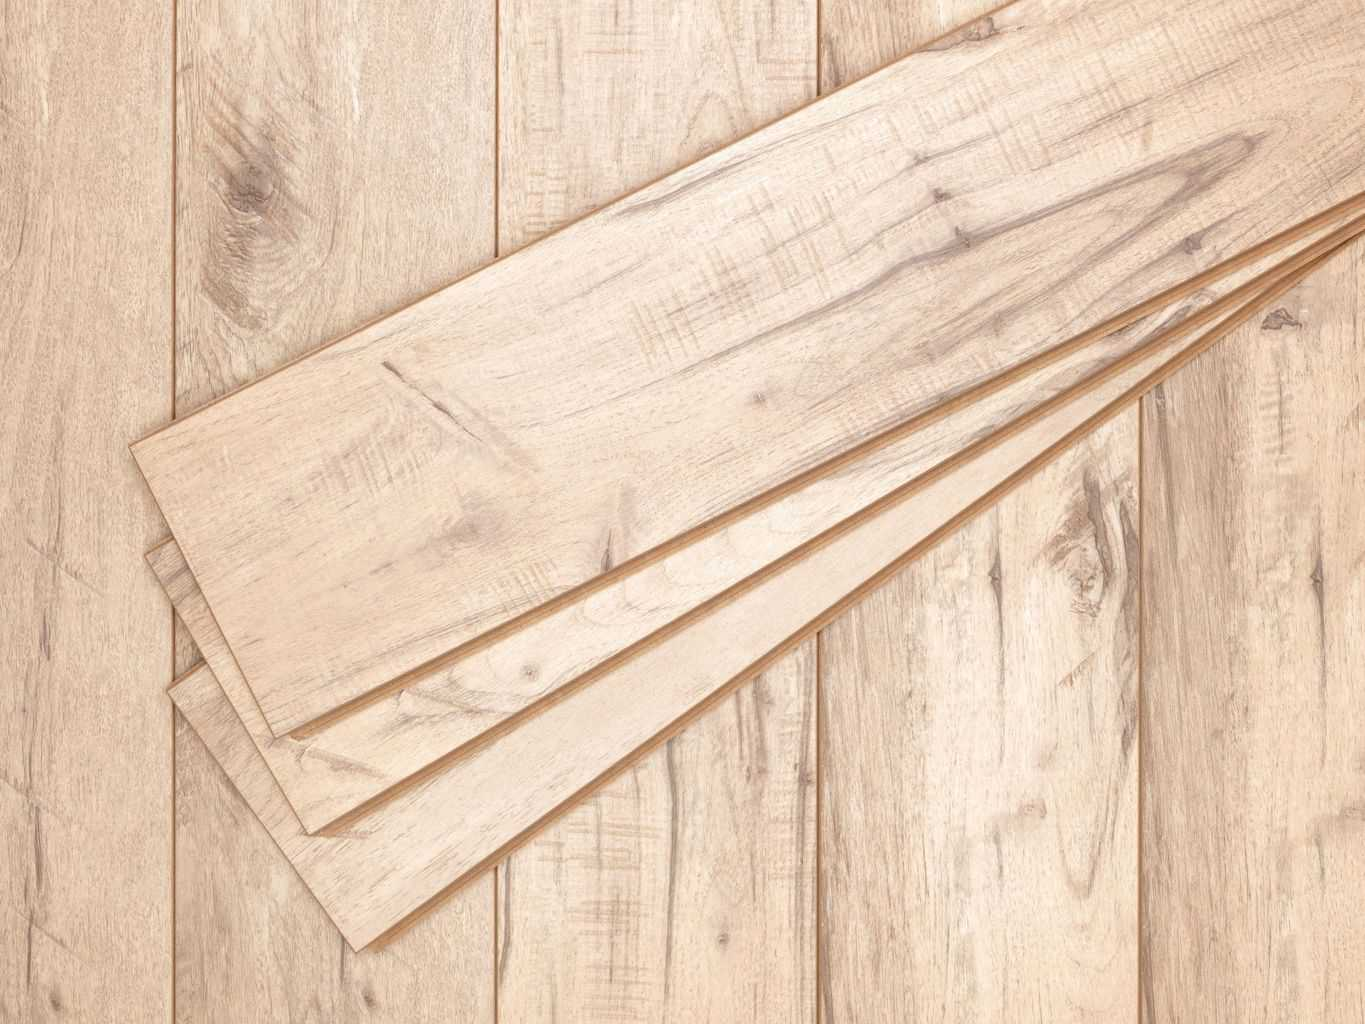 Is Laminate Flooring Good what is a good kitchen flooring solution and why ac5 german made laminate flooring is a good choice What This Means For You Is That You Can Get The Look Of An Antique Wood Floor For A Lower Price Handscraped Laminate Flooring Even Adds A Bit Of Texture